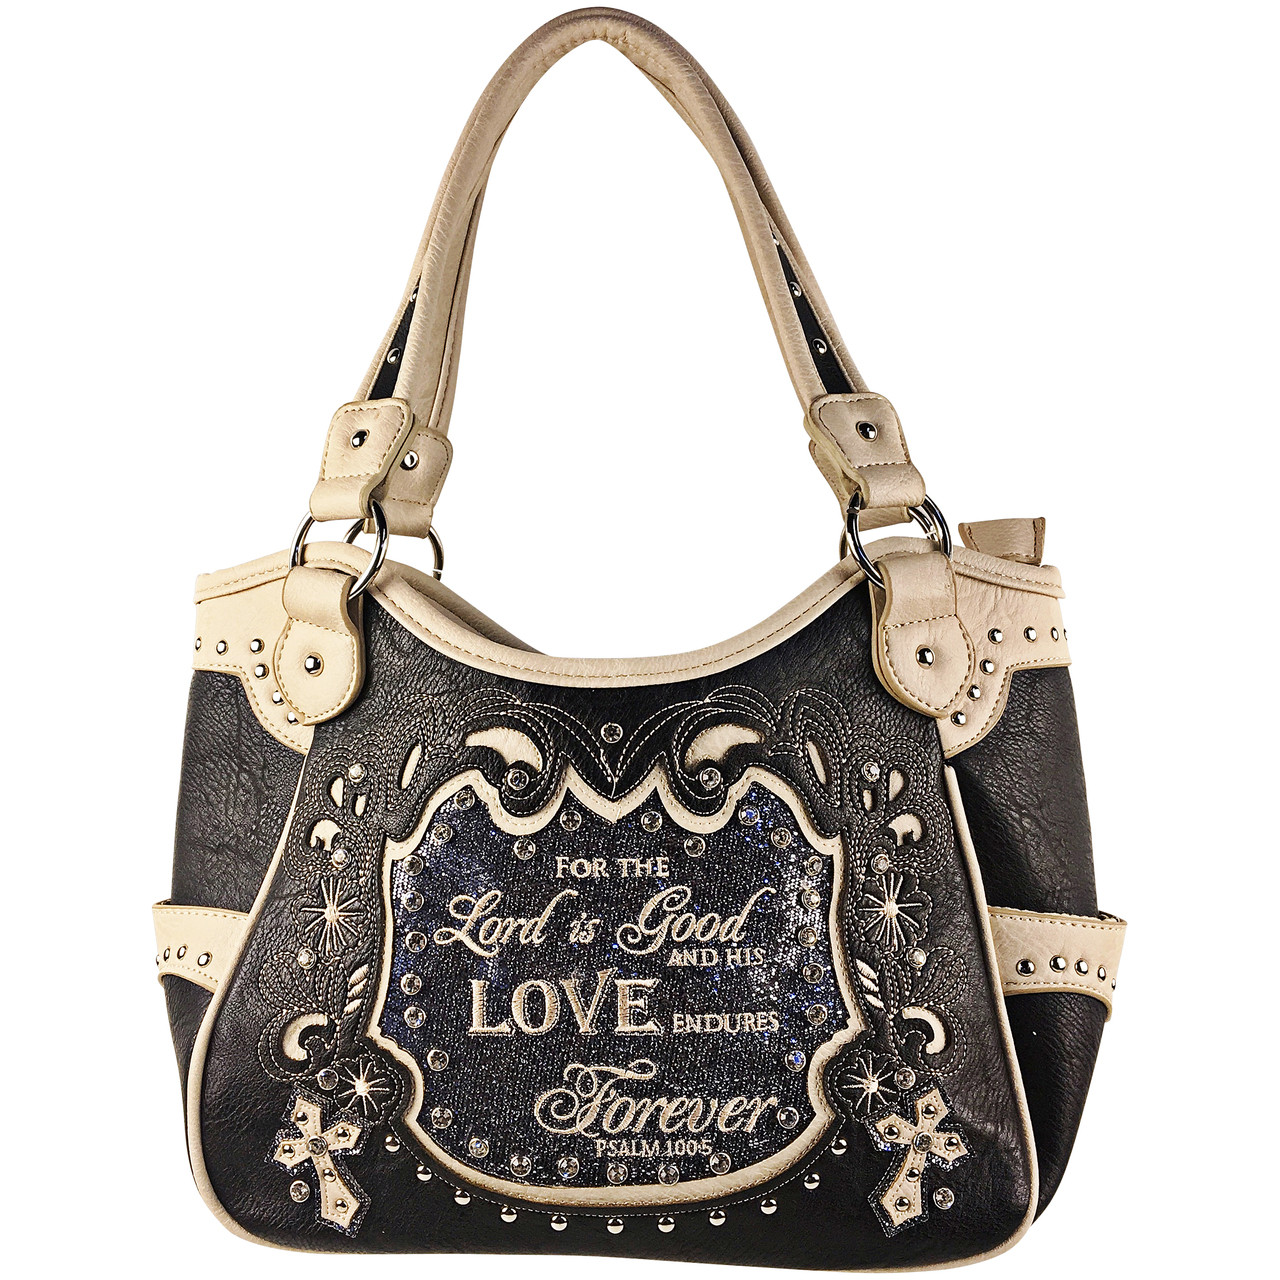 GRAY BIBLE LOVE QUOTE RHINESTONE STUDDED LOOK SHOULDER HANDBAG